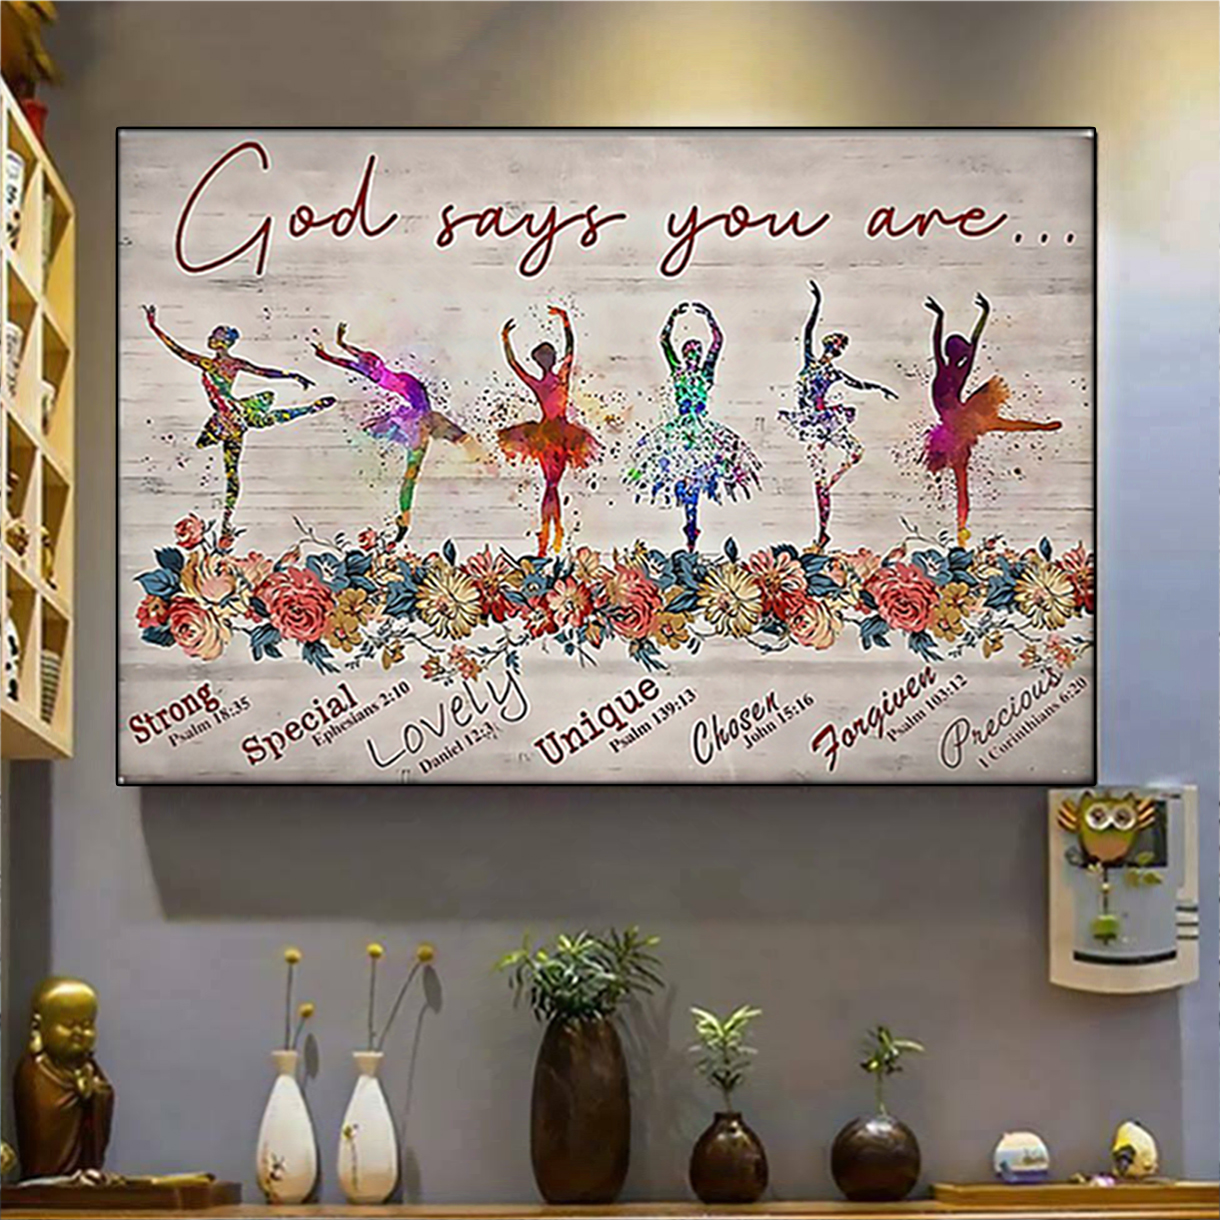 Ballet god says you are poster A3